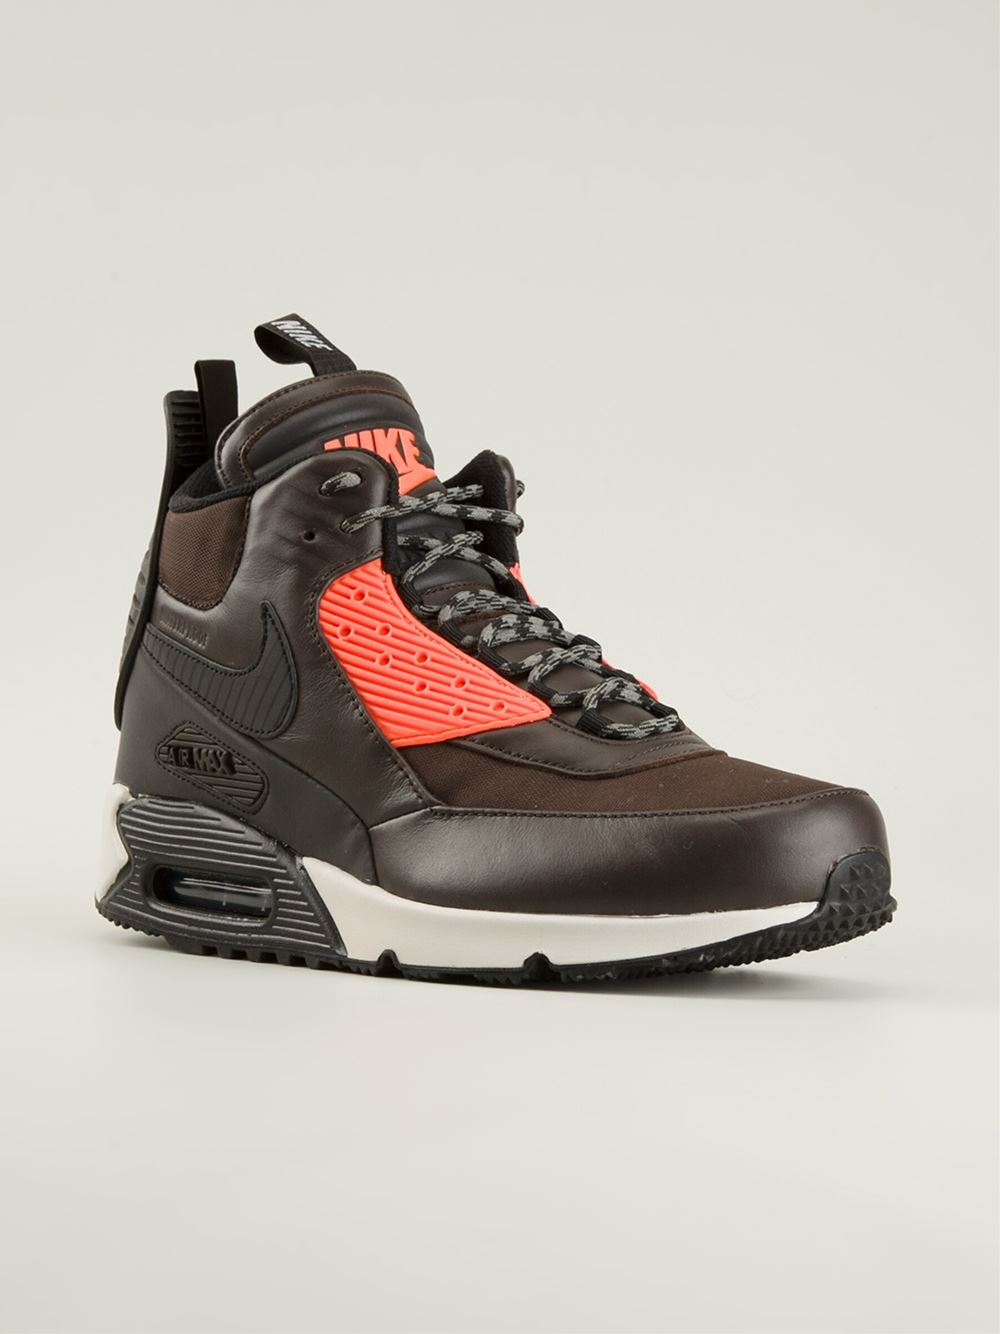 air max 90 sneakerboot winter trainer